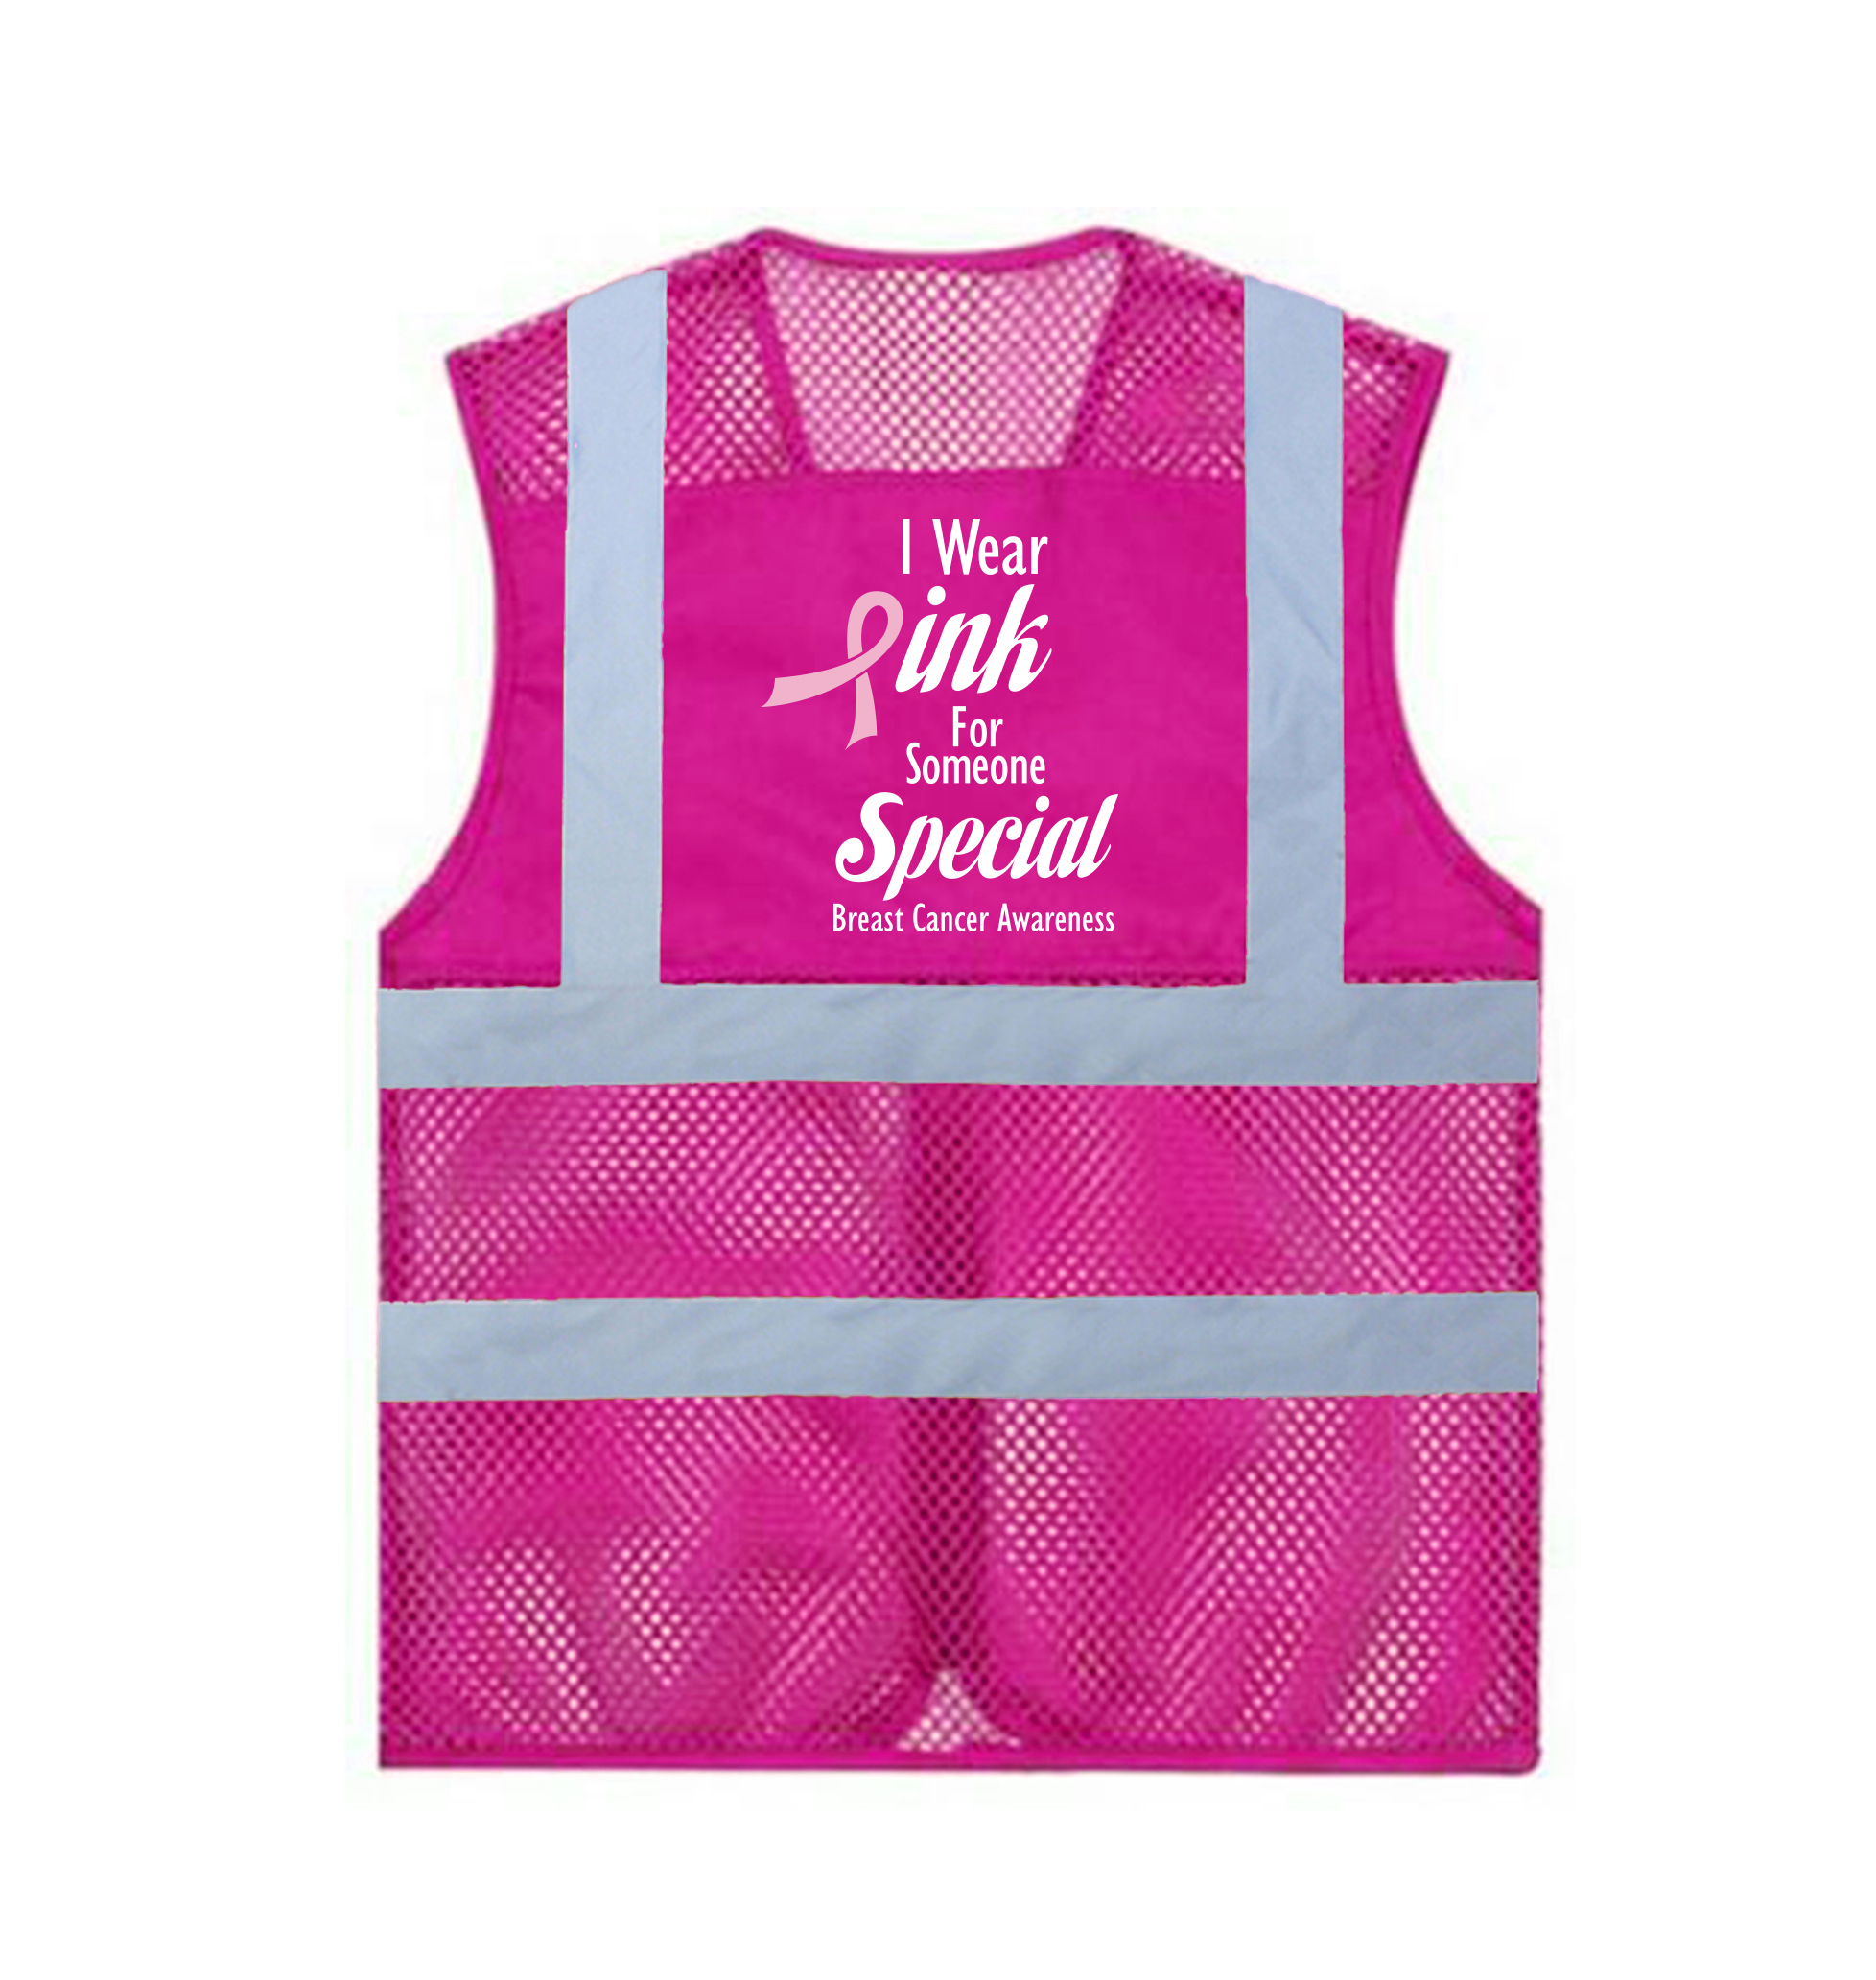 GOGO Custom Your Own Vest - Zipper Breathable Hotpink Safety Vest with High Visibility Strips